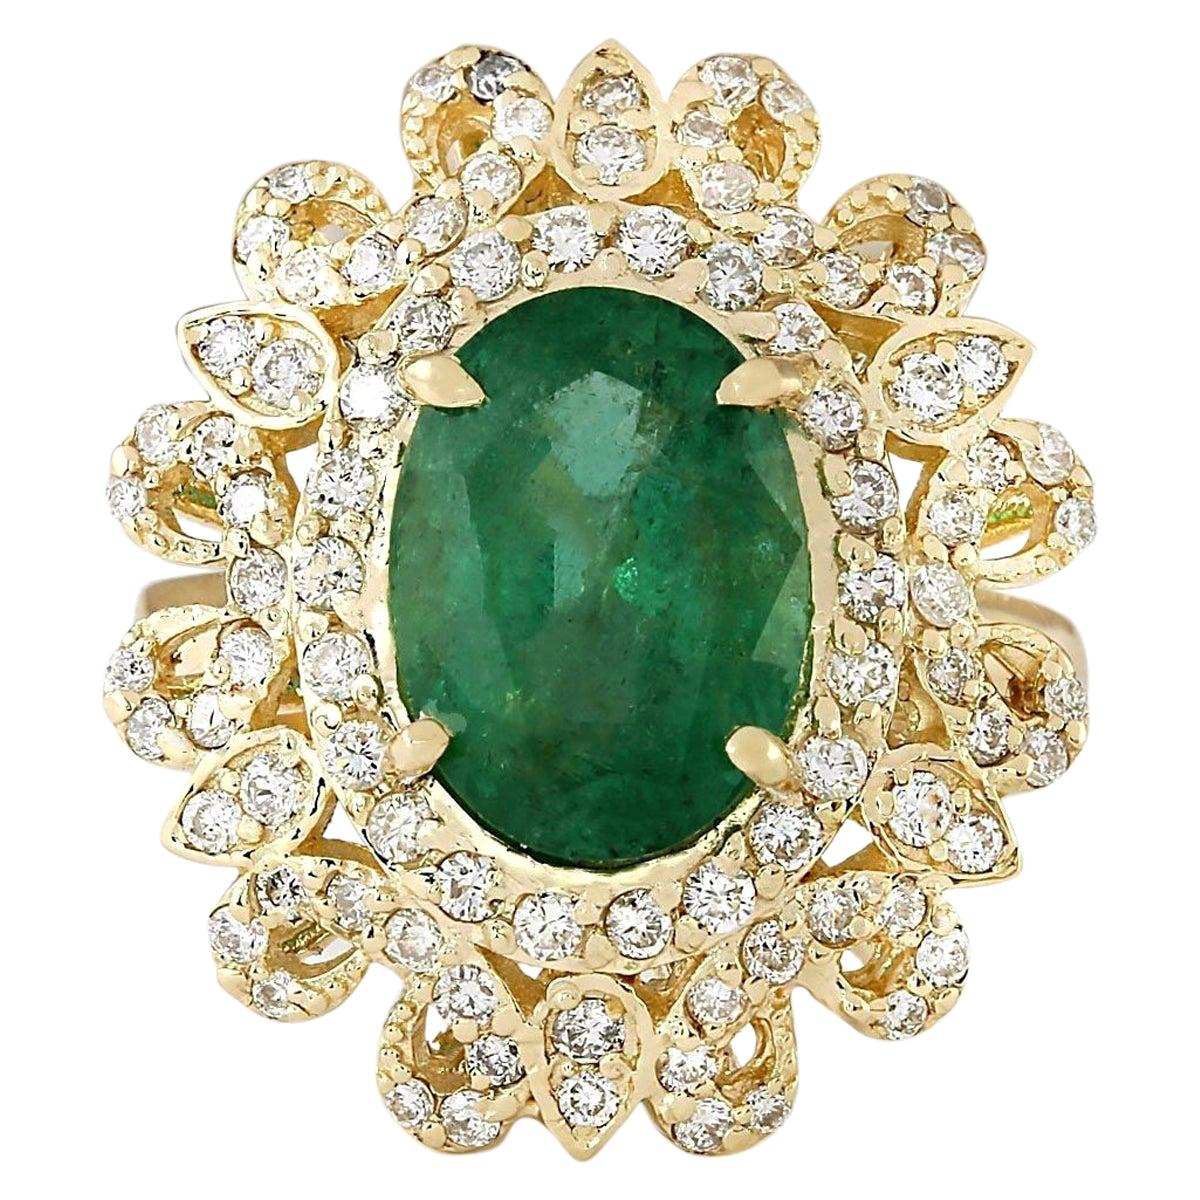 5.16 Carat Natural Emerald 18 Karat Yellow Gold Diamond Ring